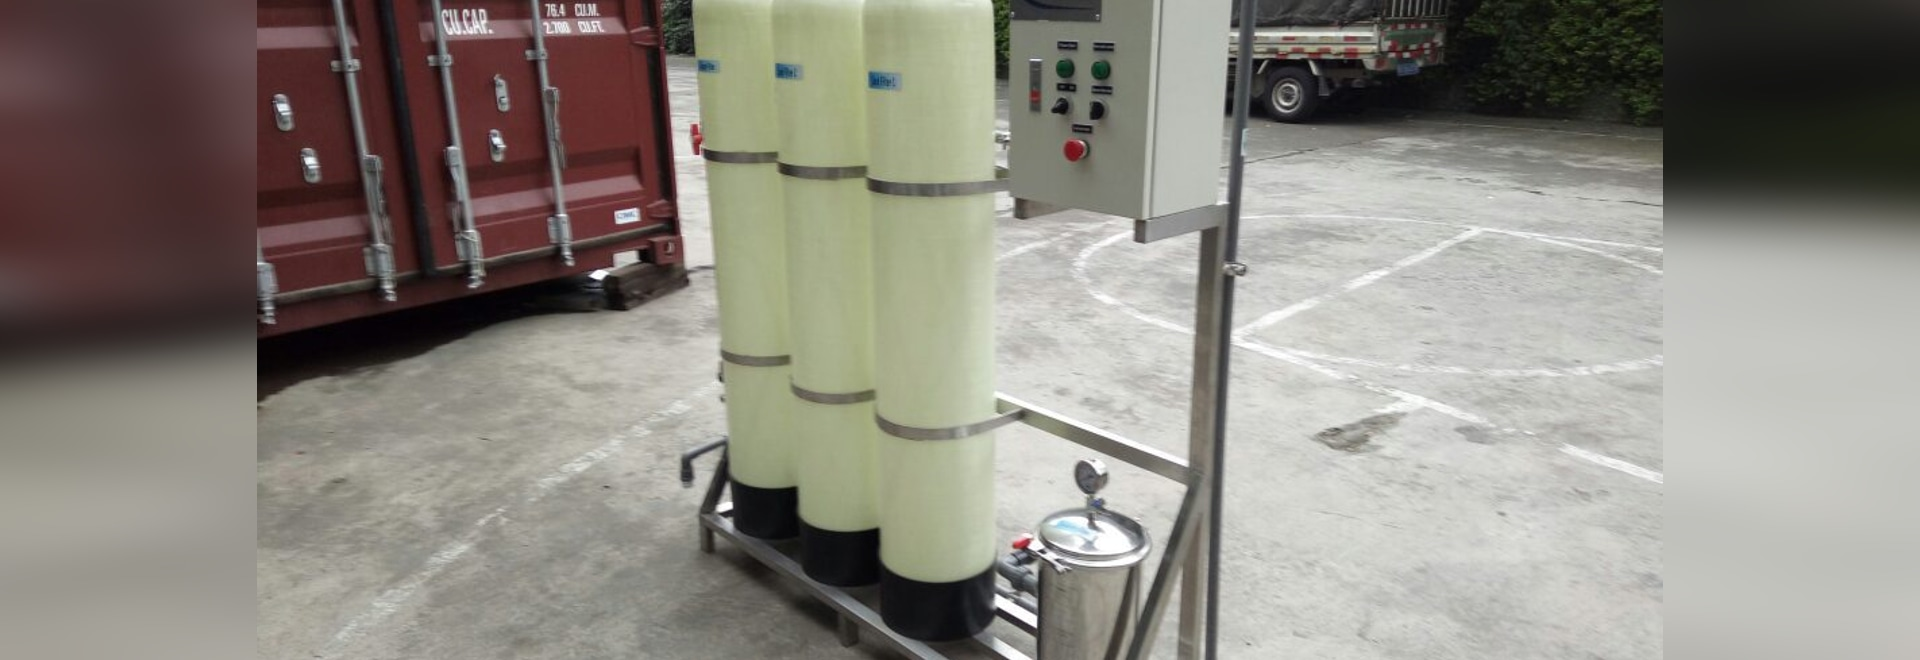 WT000 mini water treatment plant